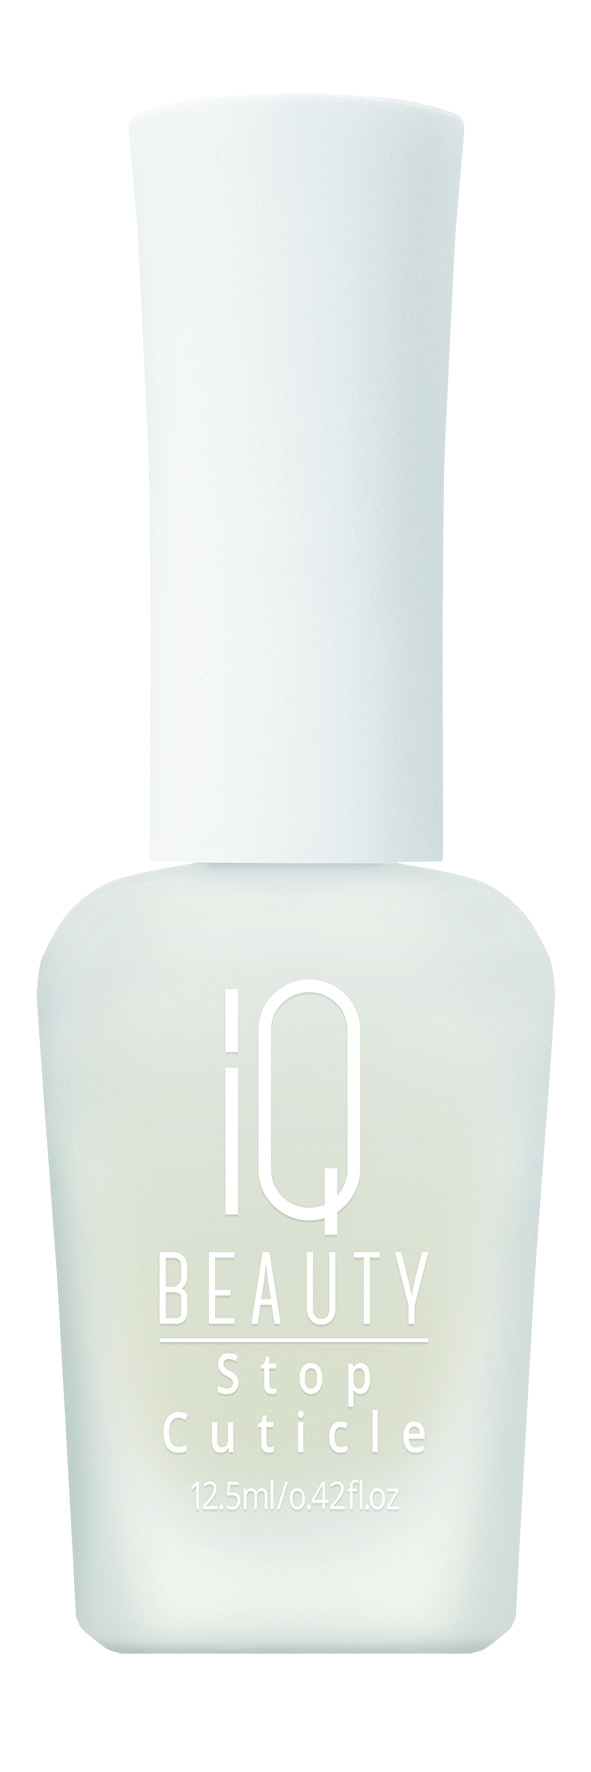 IQ BEAUTY ��������� �������� ����������������� /Stop Cuticle 12,5��